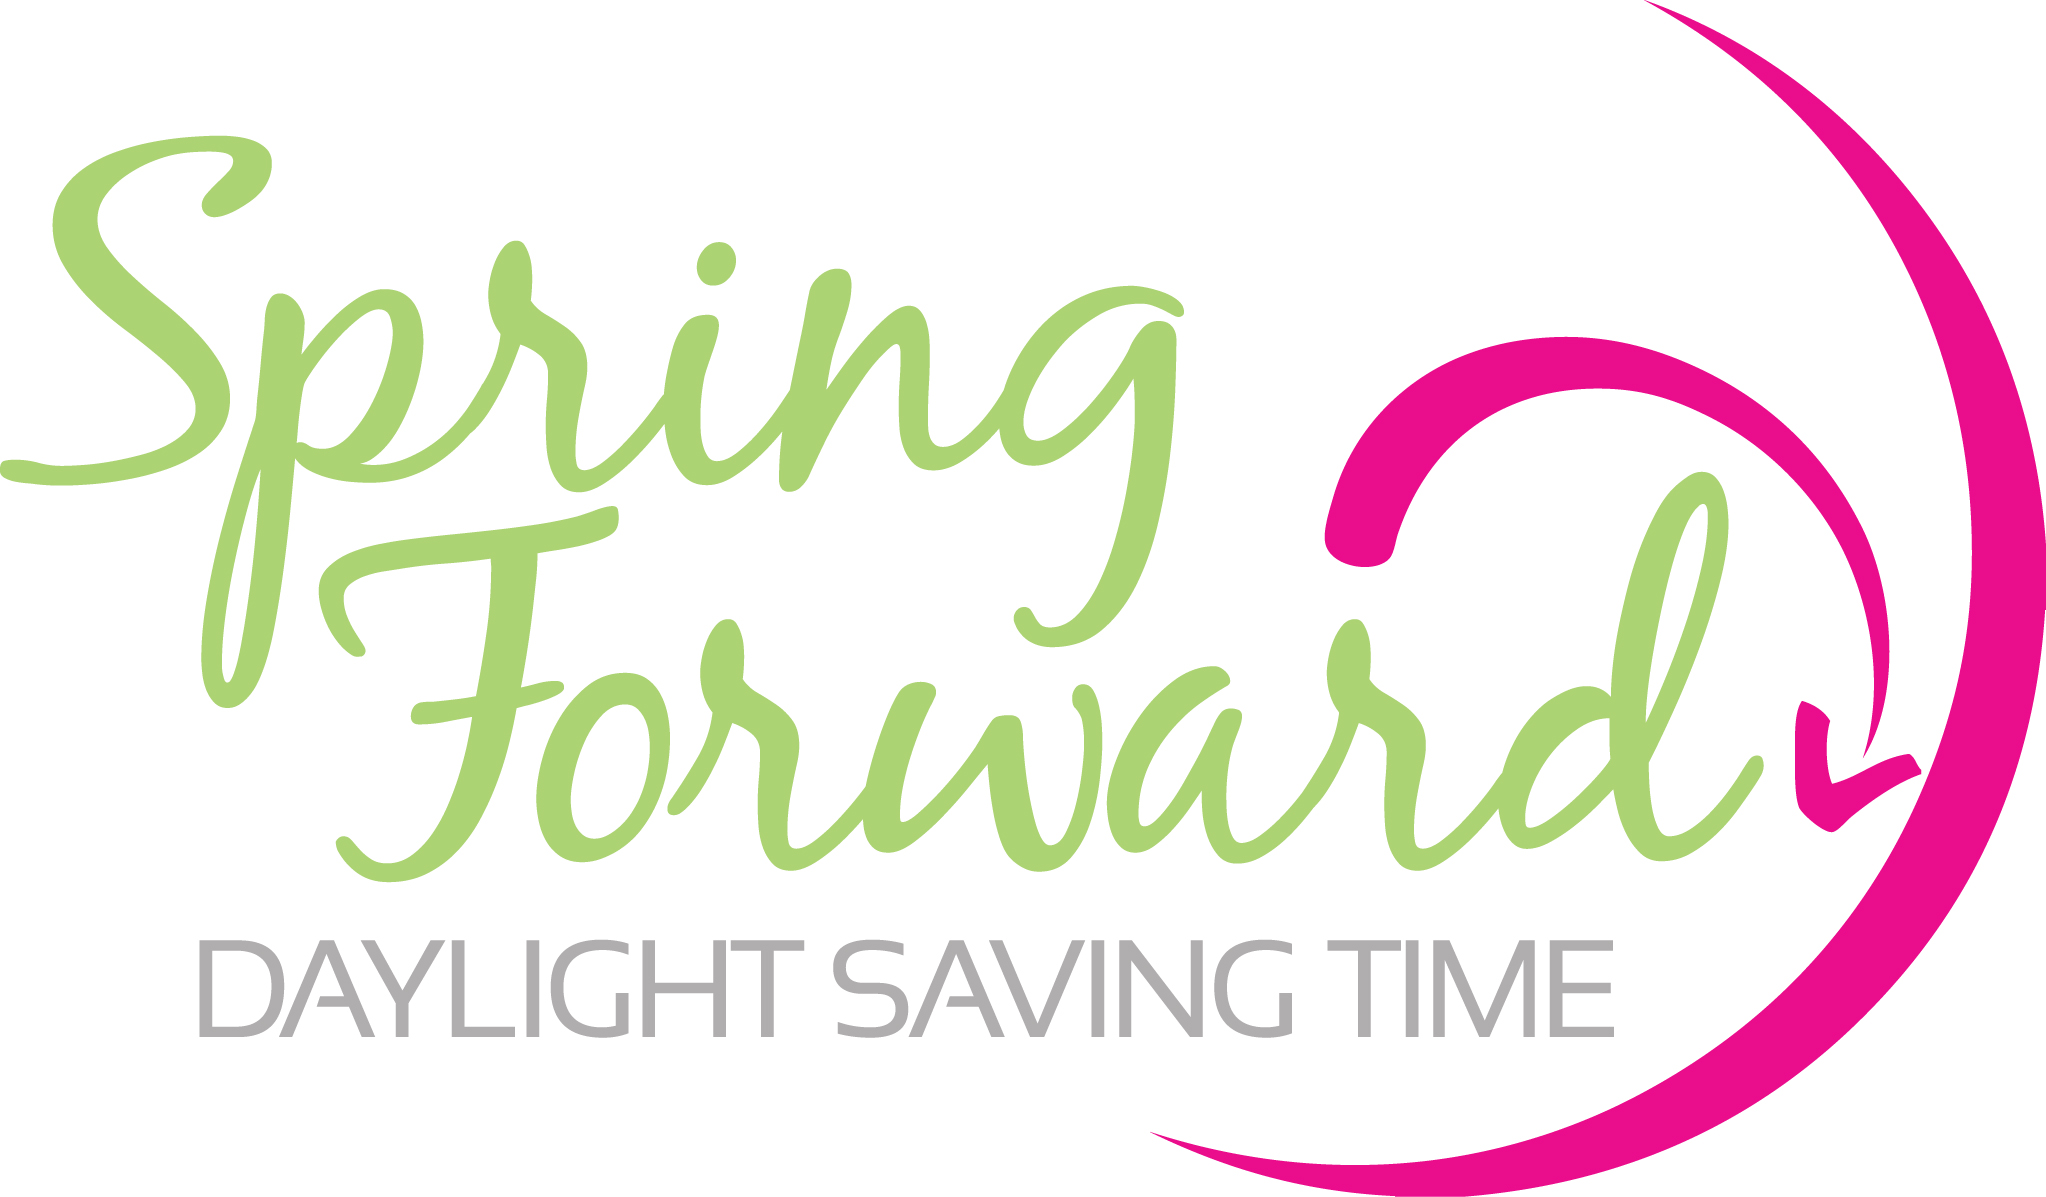 Daylight Savings Time Begins Clipart Day-Daylight Savings Time Begins Clipart Daylight Clipart-8